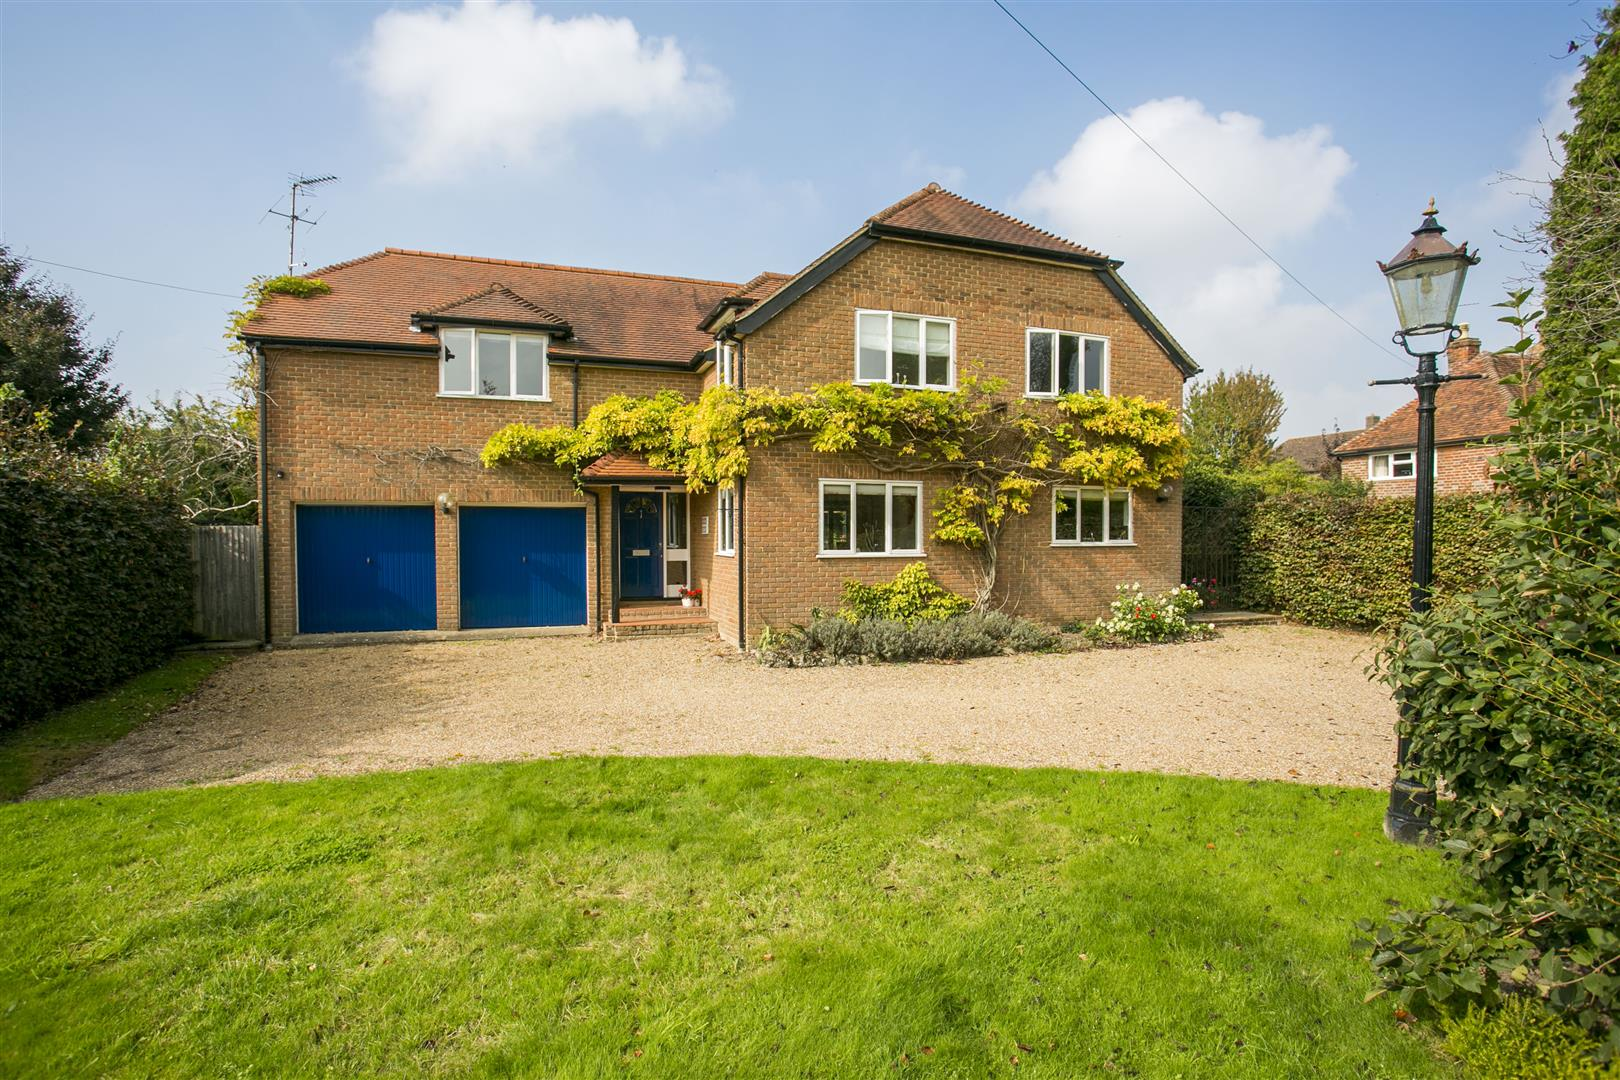 5 Bedrooms Detached House for sale in Old Road, Wateringbury